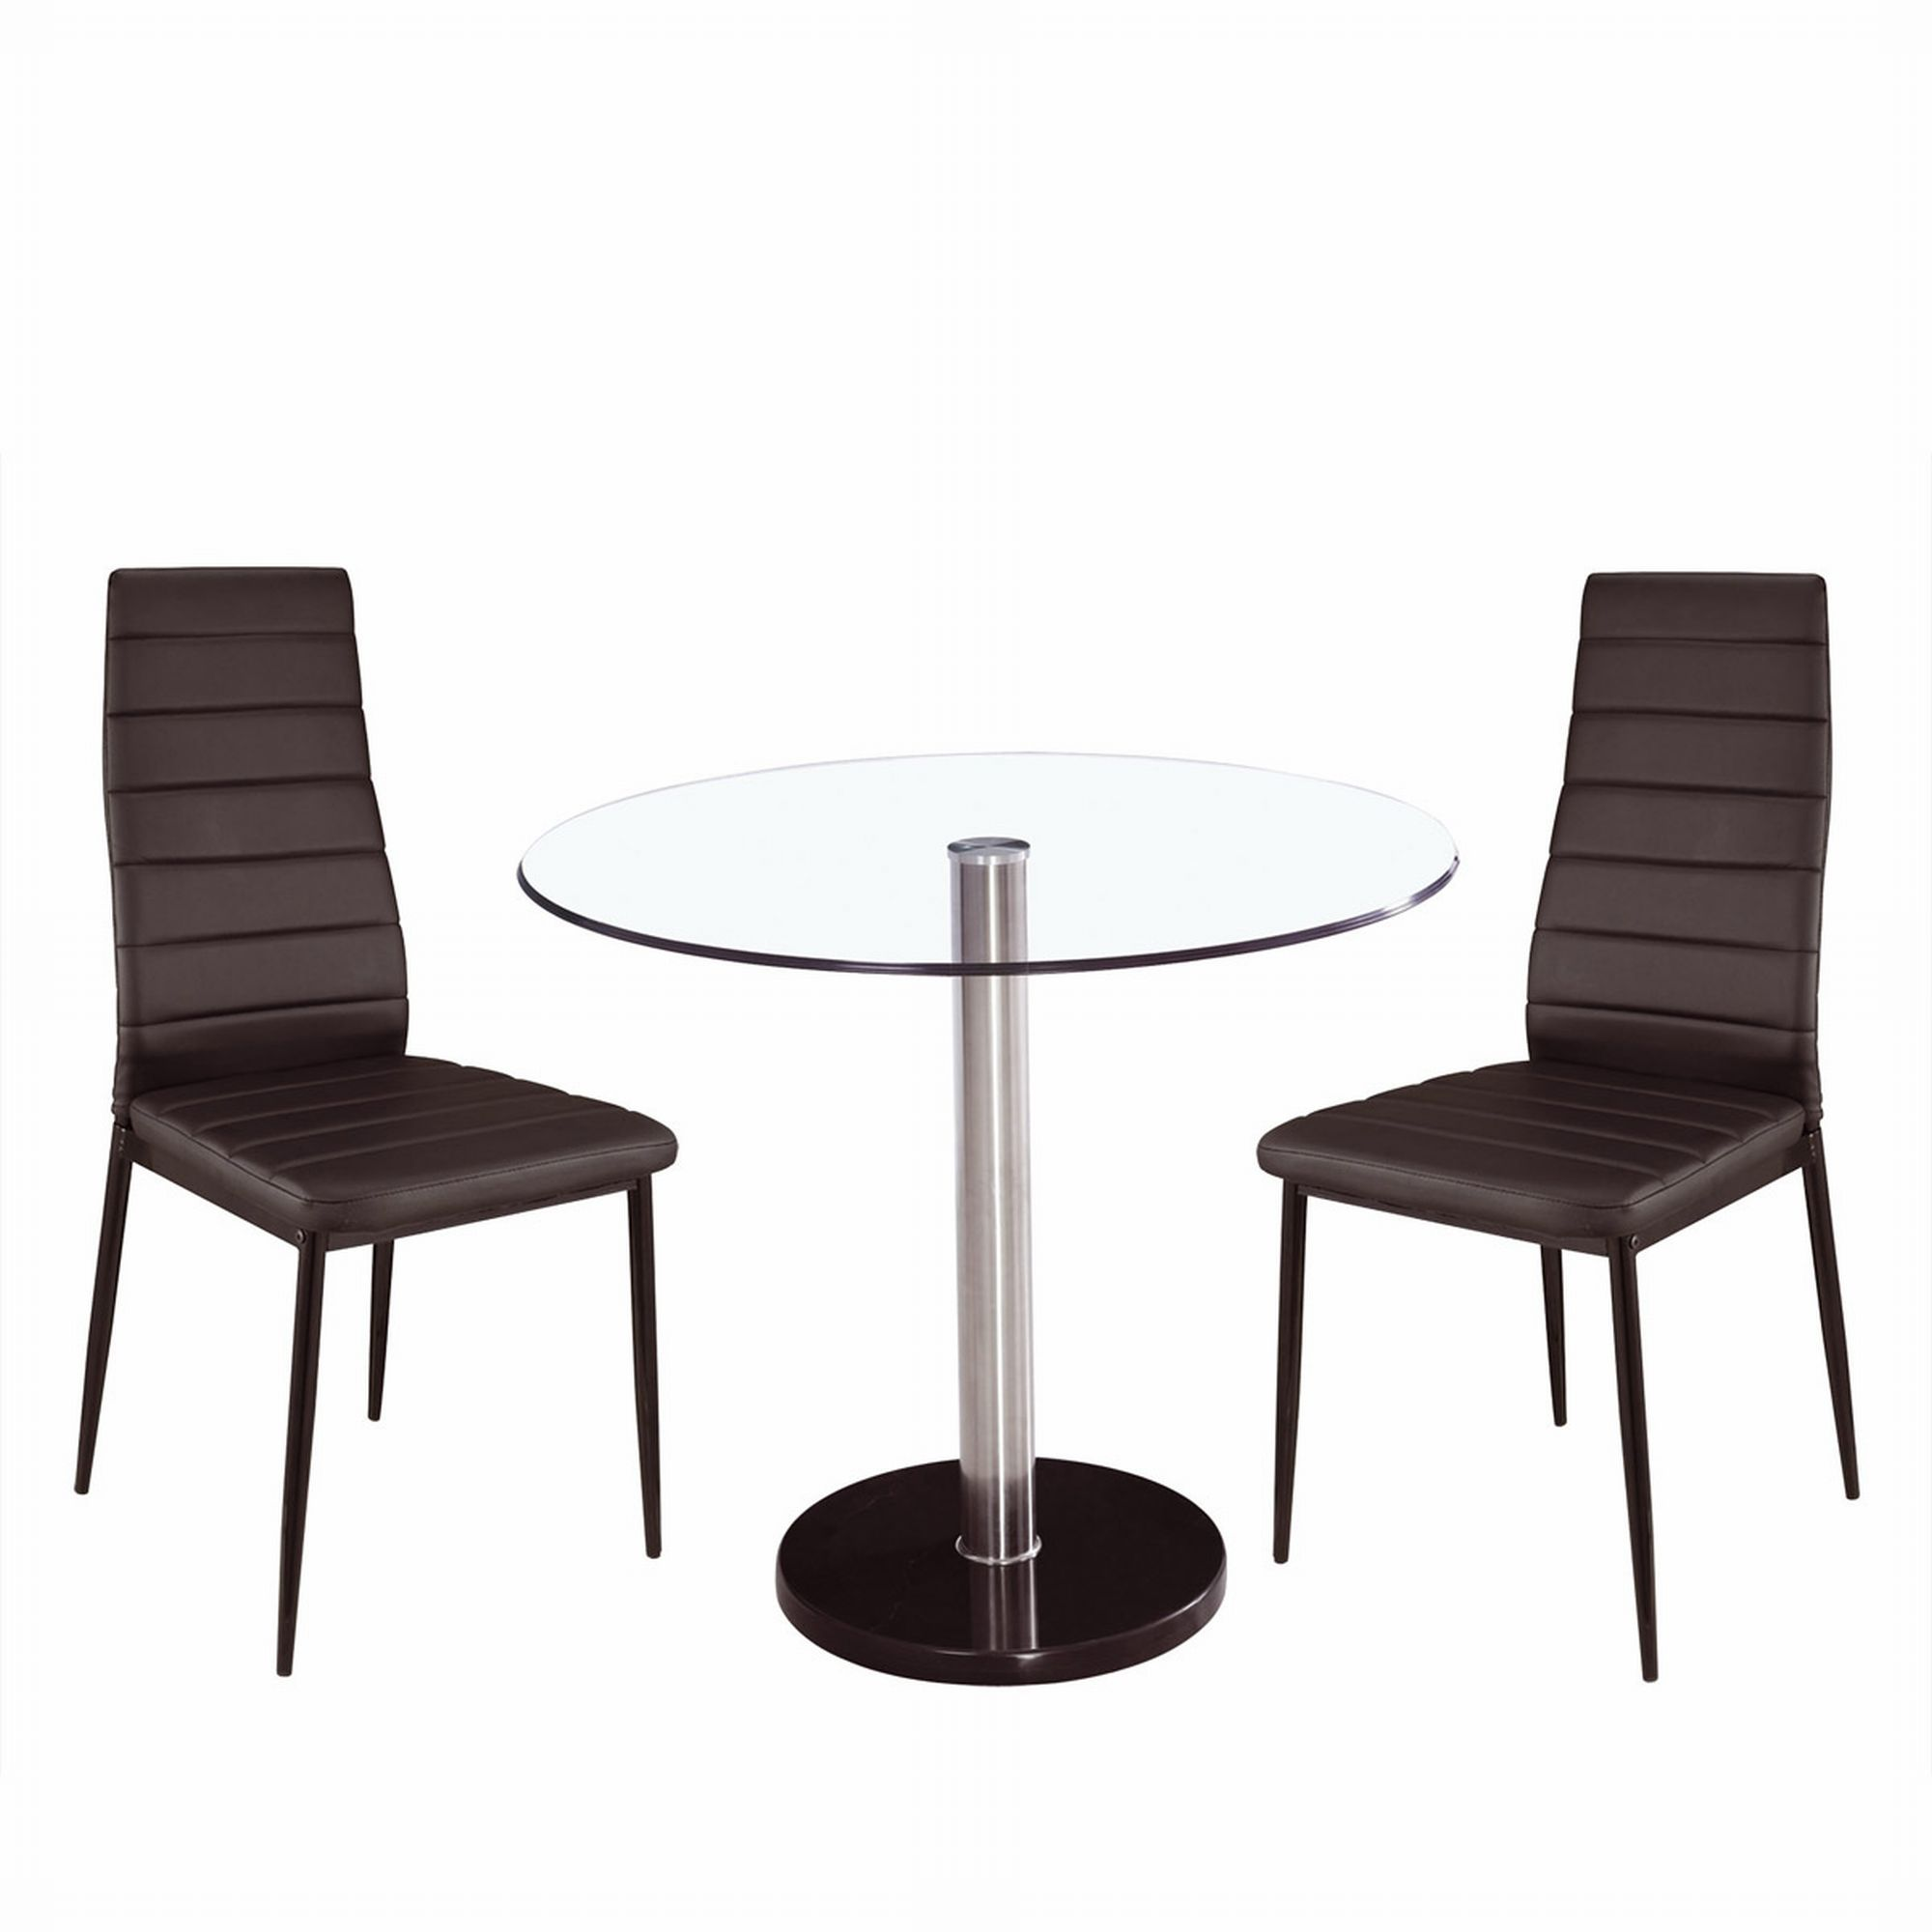 design glastisch 2 st hle esszimmerset glas tisch esstisch modern bistro set ebay. Black Bedroom Furniture Sets. Home Design Ideas